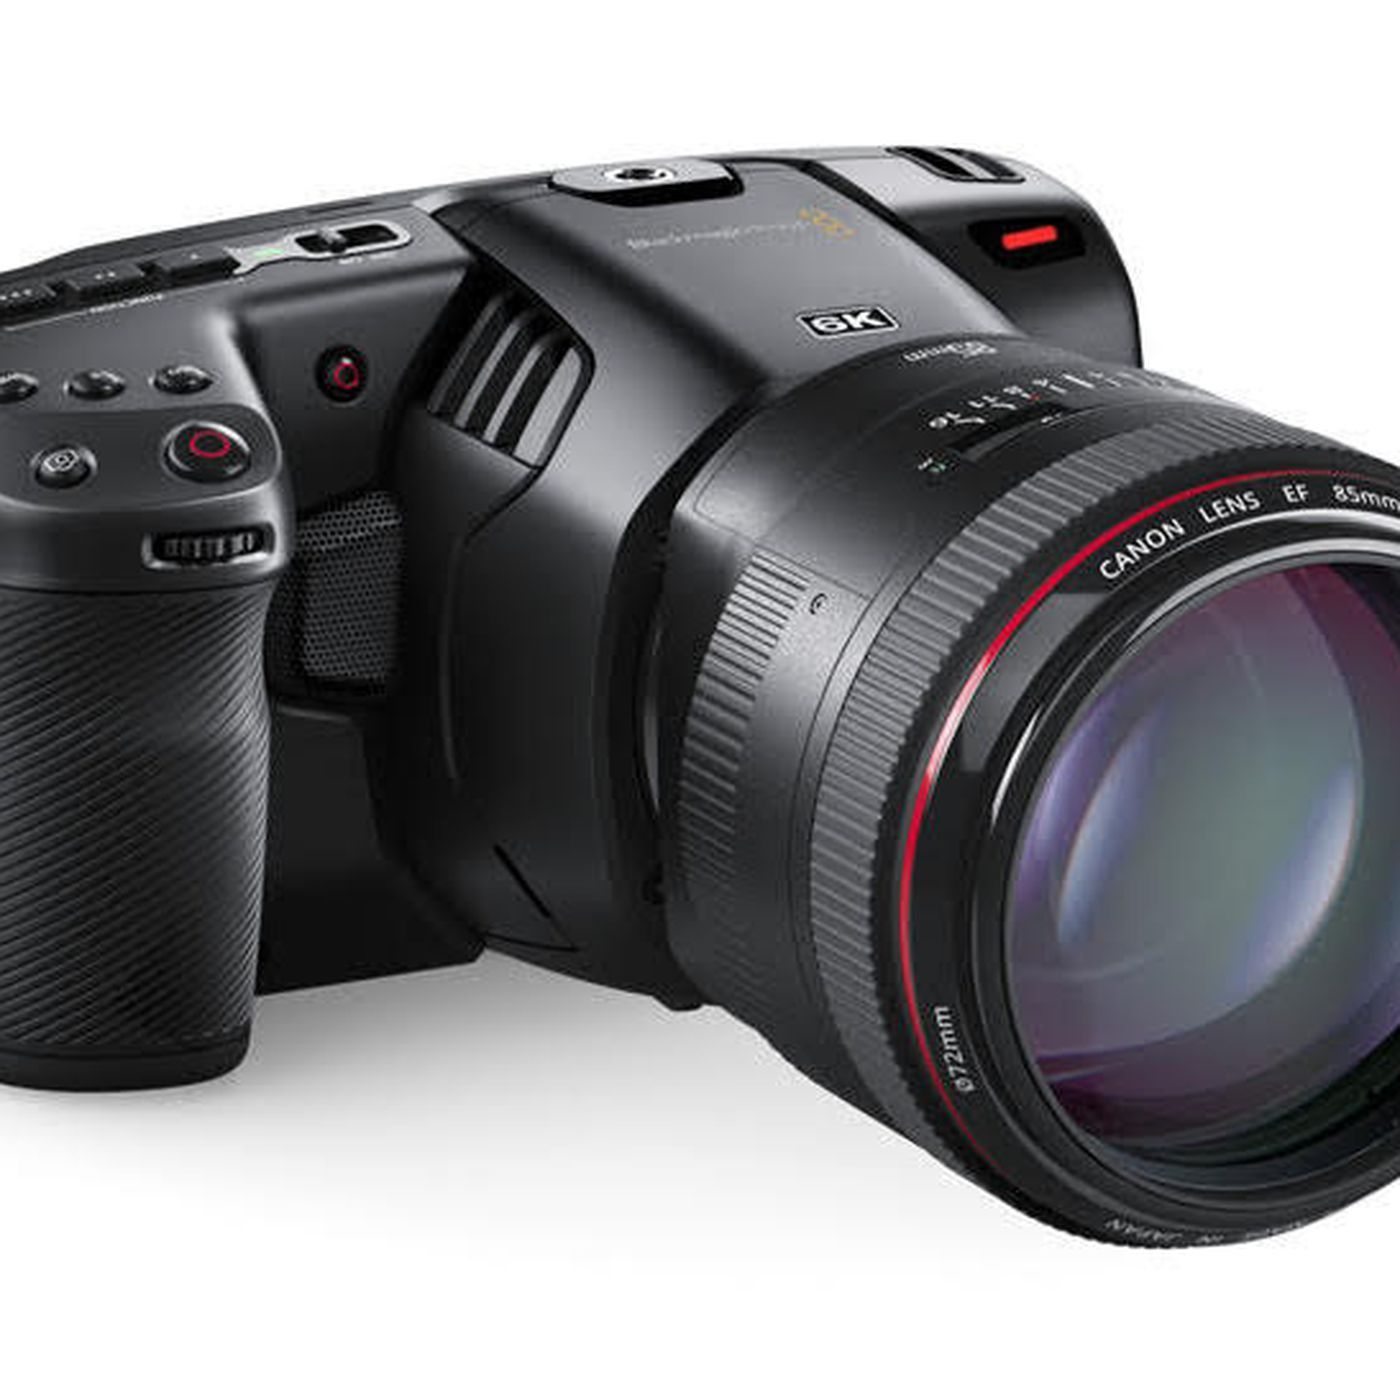 Blackmagic announces Pocket Cinema Camera 6K - The Verge